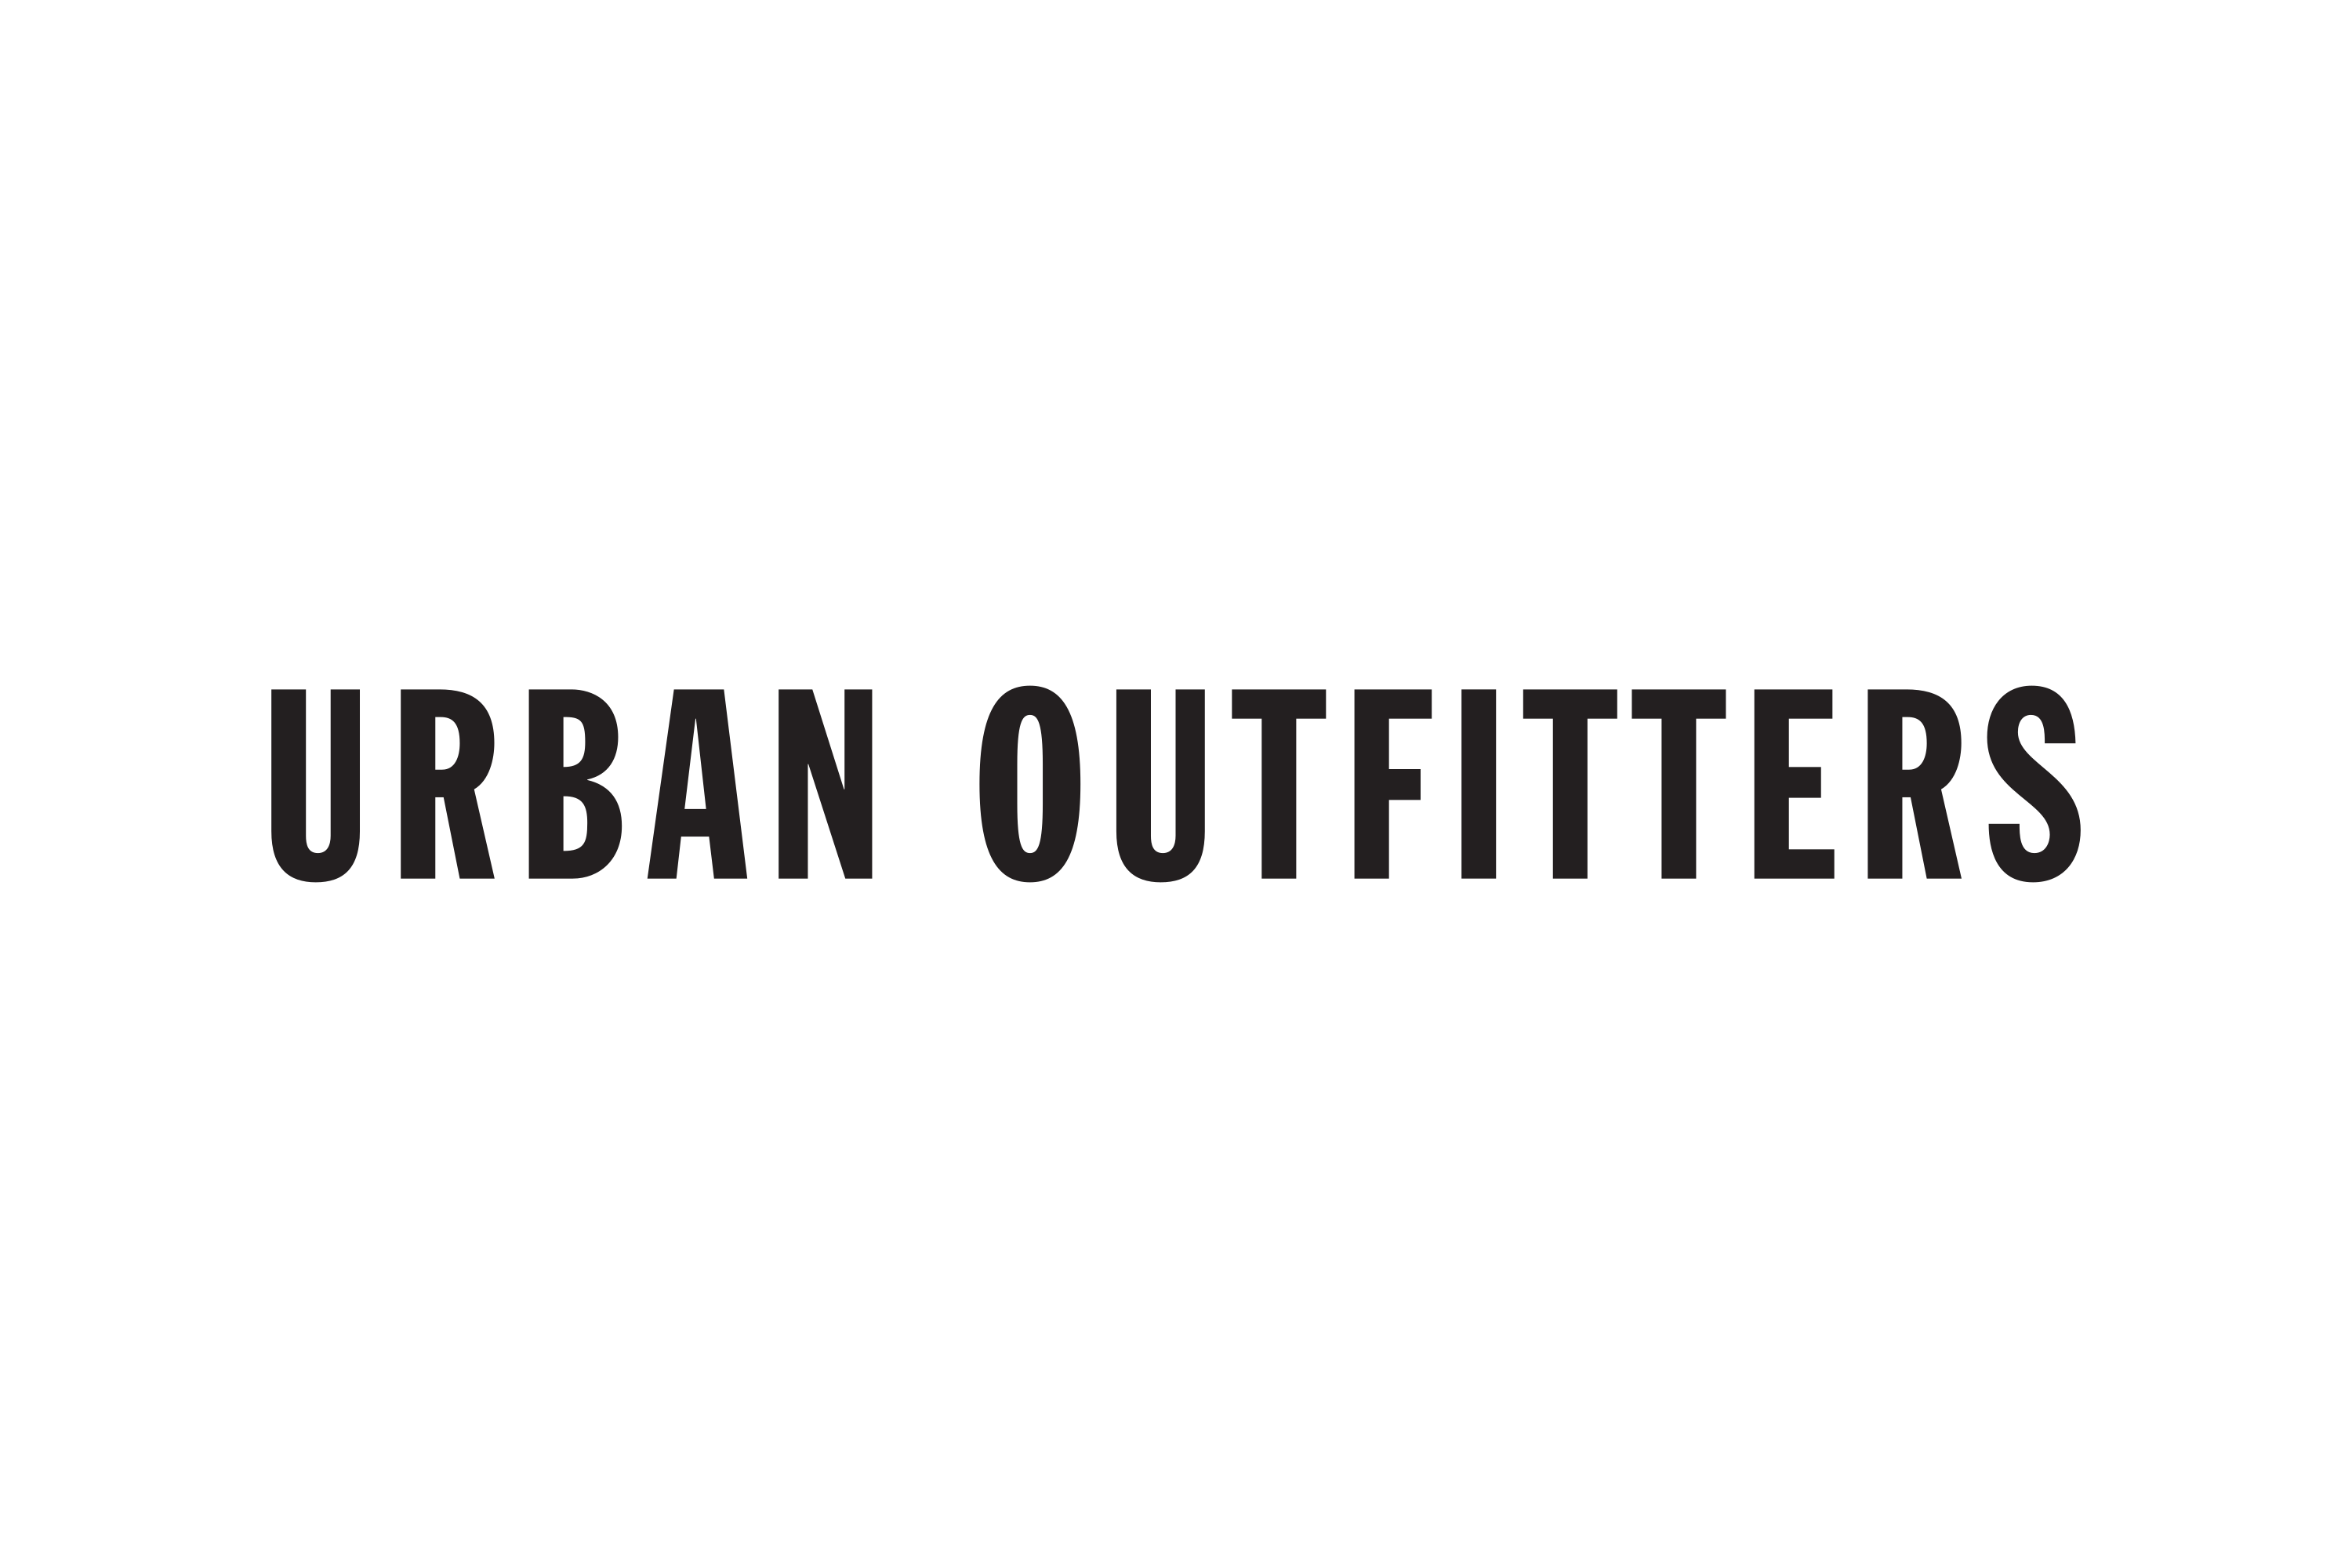 Urban outfiters